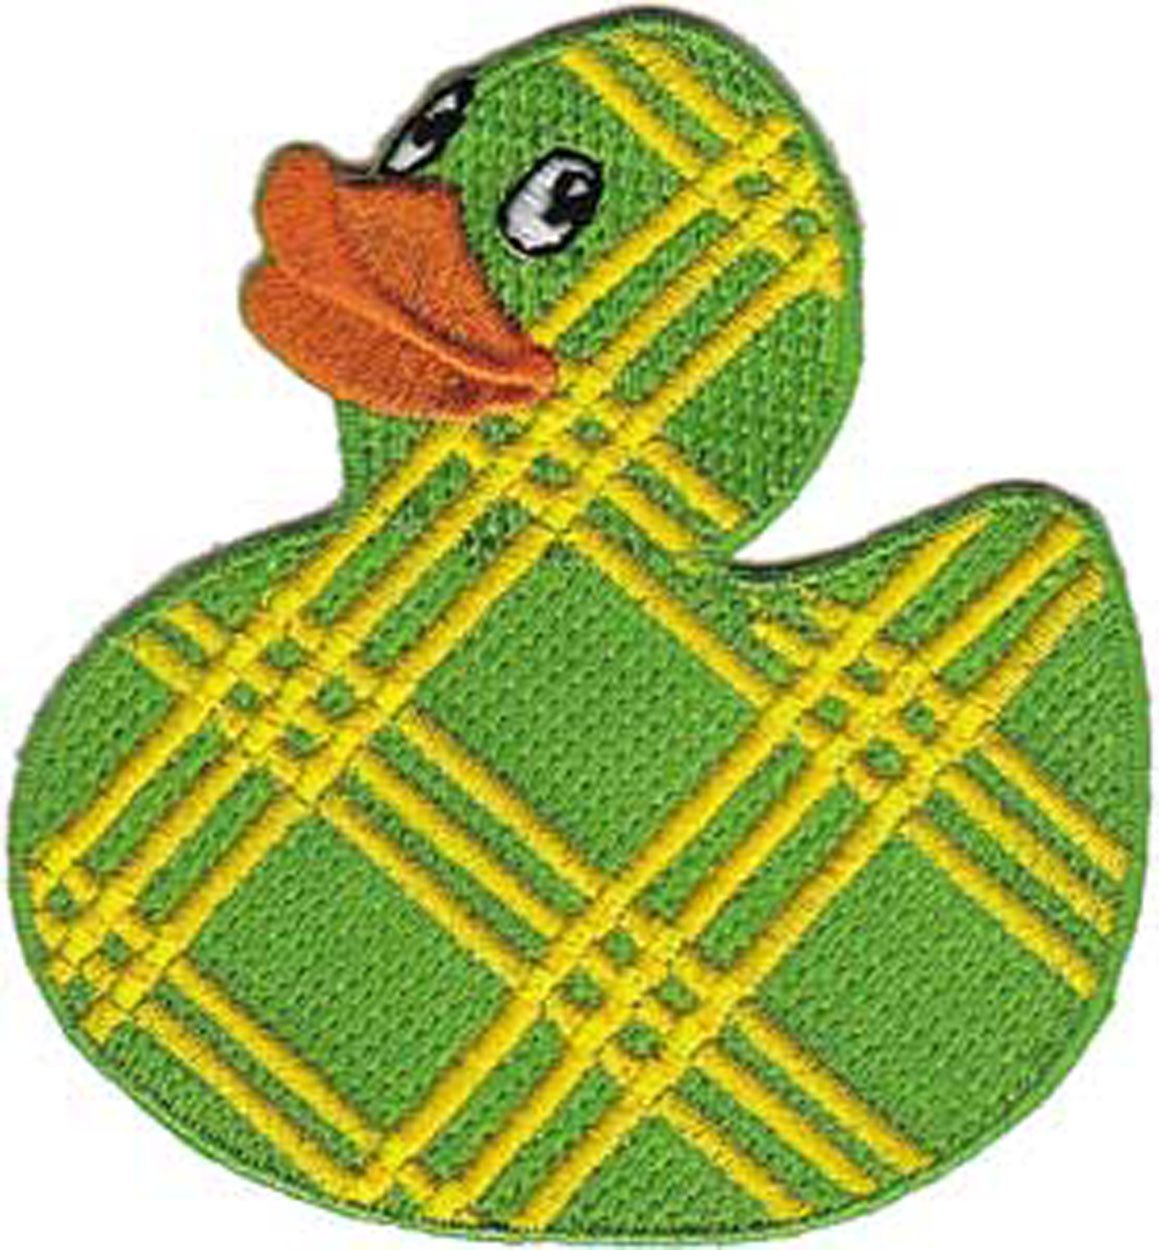 Patch - Animals - Plaid Rubber Ducky Iron On Gifts New Licensed p-3731